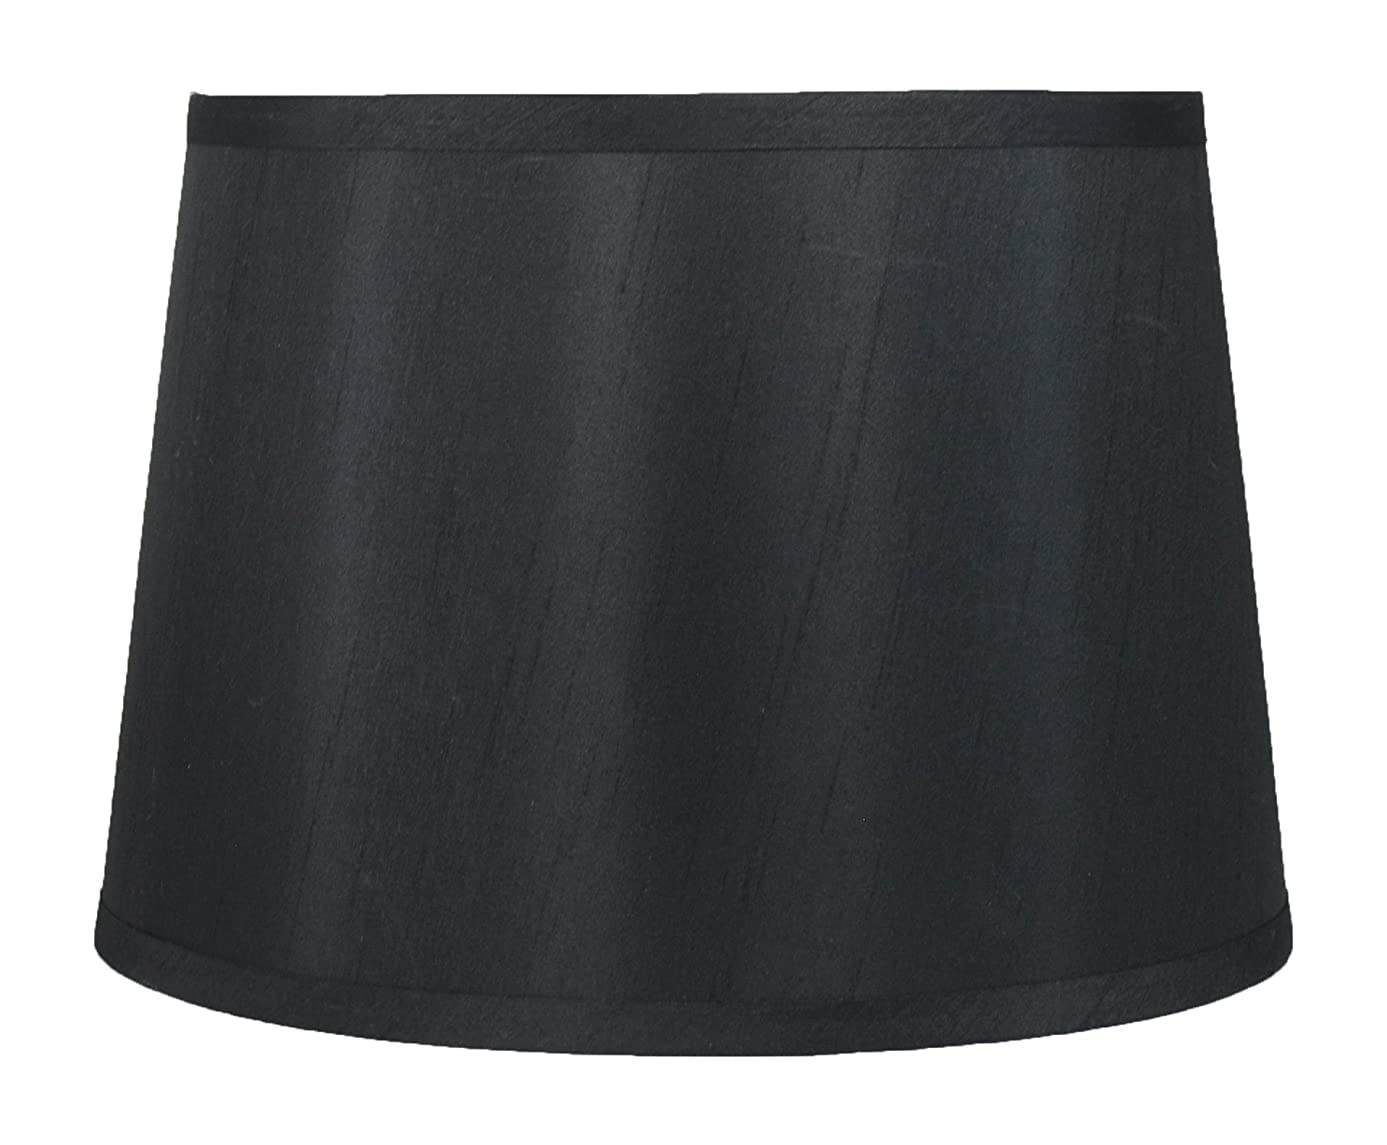 Urbanest French Drum Lampshade, Faux Silk, 10-inch by 12-inch by 8.5-inch, Black, Spider